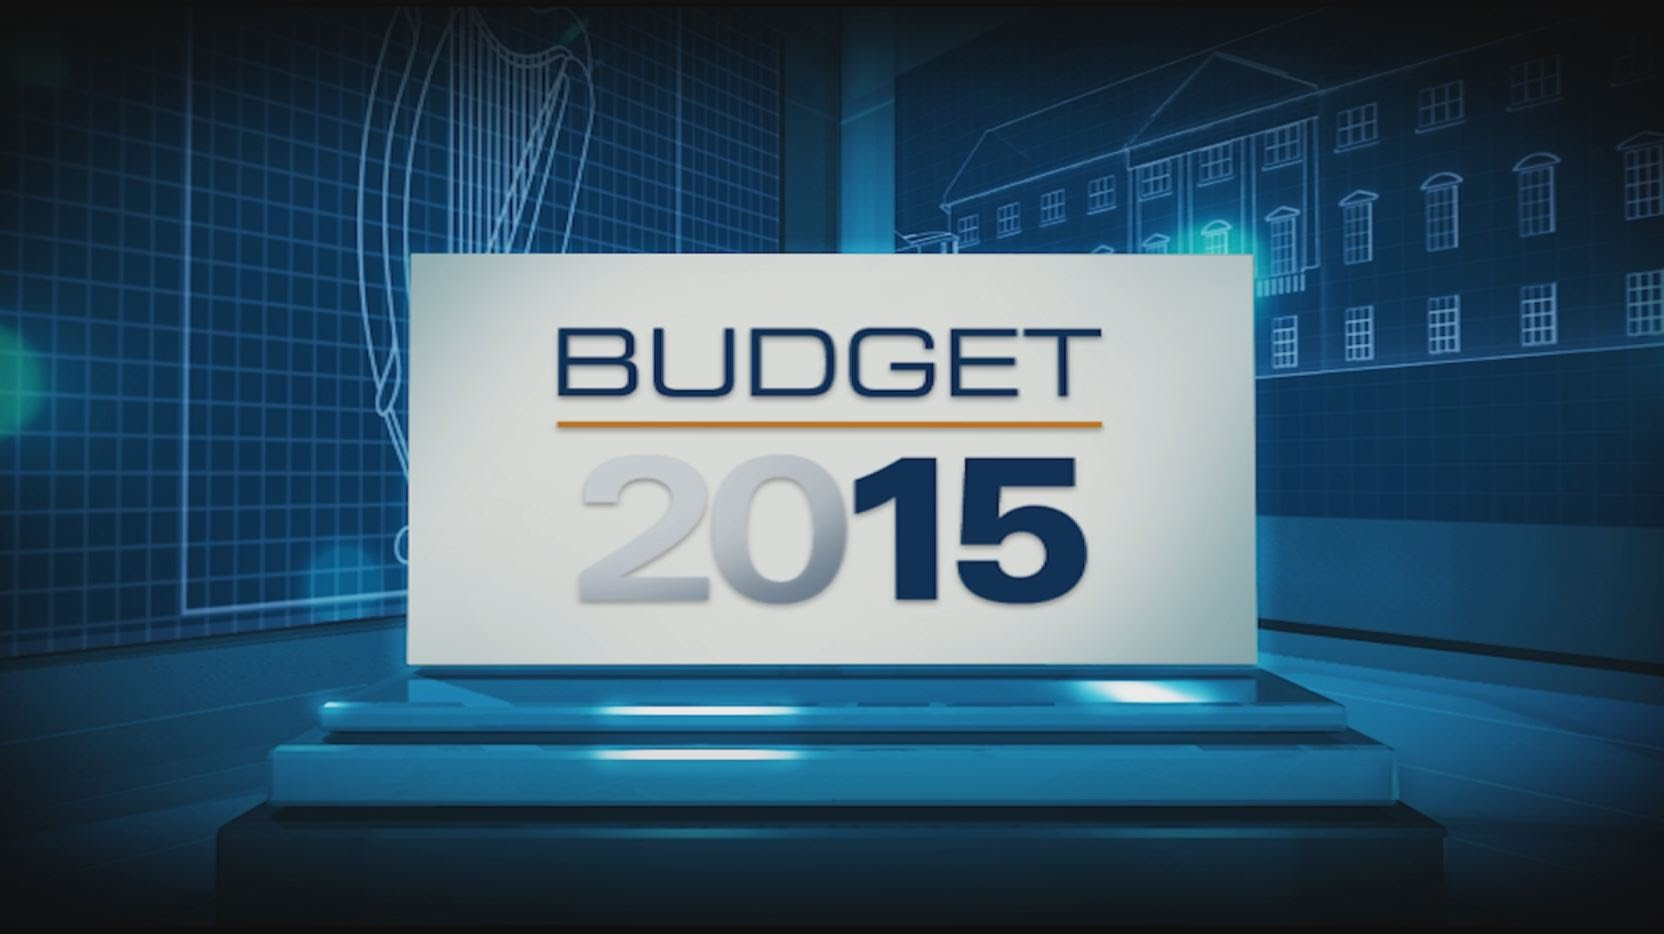 budget 2015 Sources between budget lines fy 2015 base fy 2014 enacted plus adjustments-to-base program change requested increase or decrease over the fy 2015 base fy 2015 request fy 2015 base plus program changes.